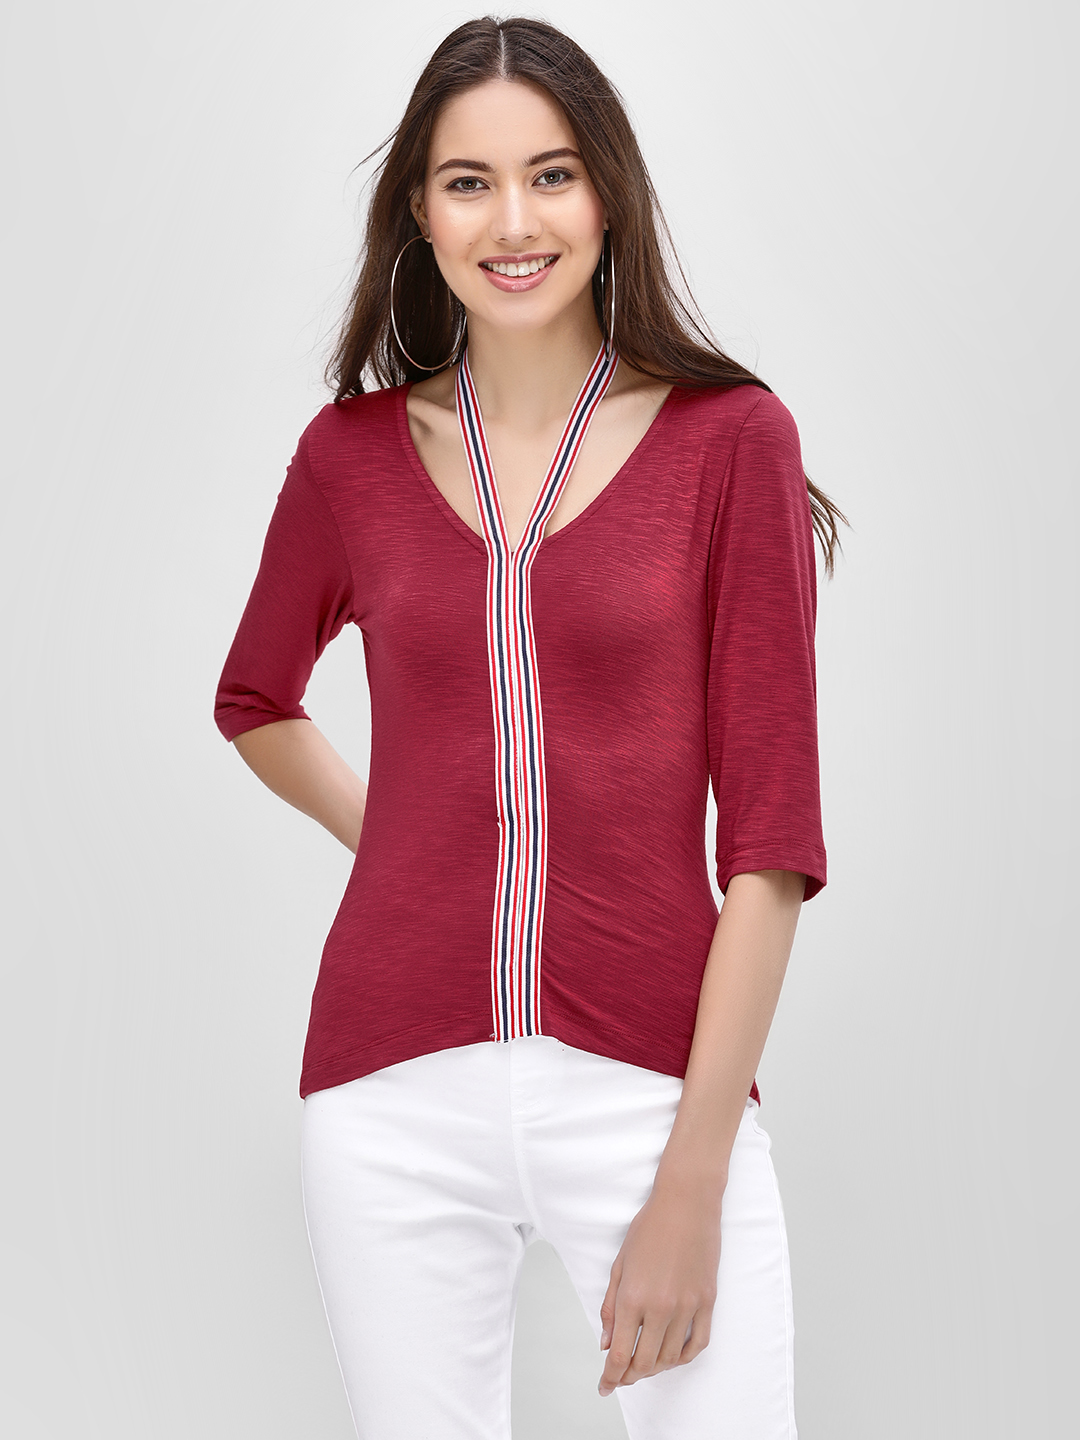 Ri-Dress Maroon Blouse With Contrast Detail 1